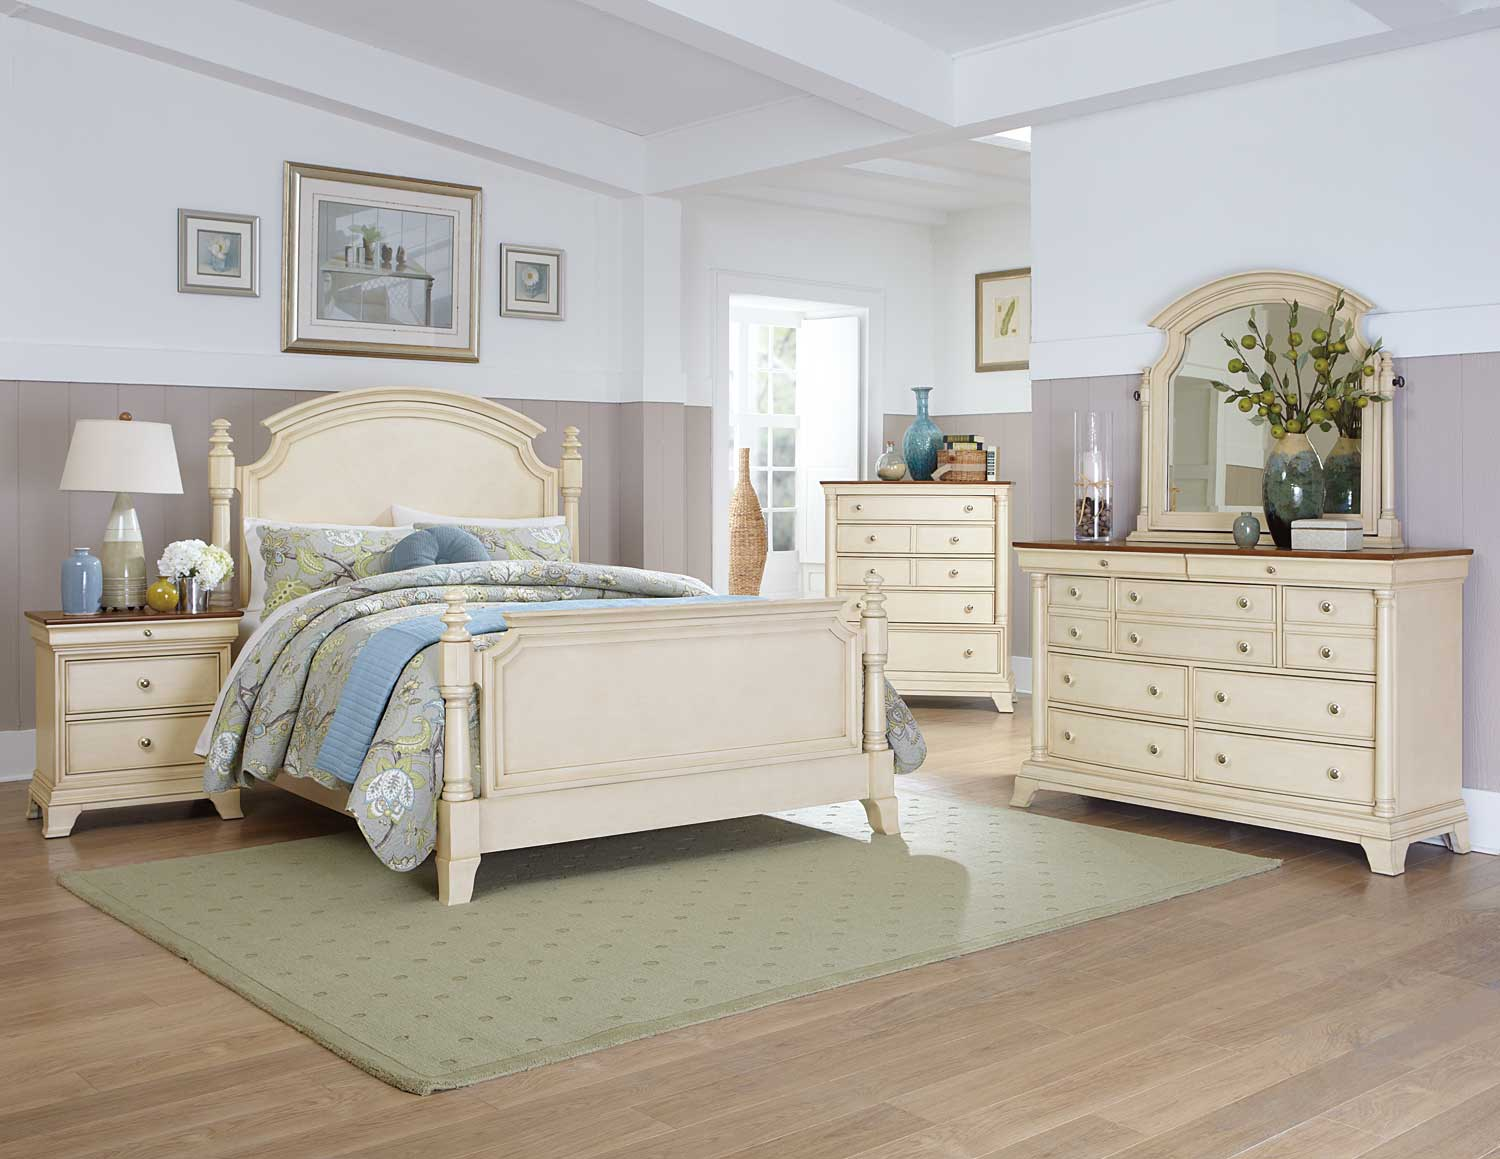 Homelegance inglewood ii bedroom set white b1402w bed for White bedroom furniture set